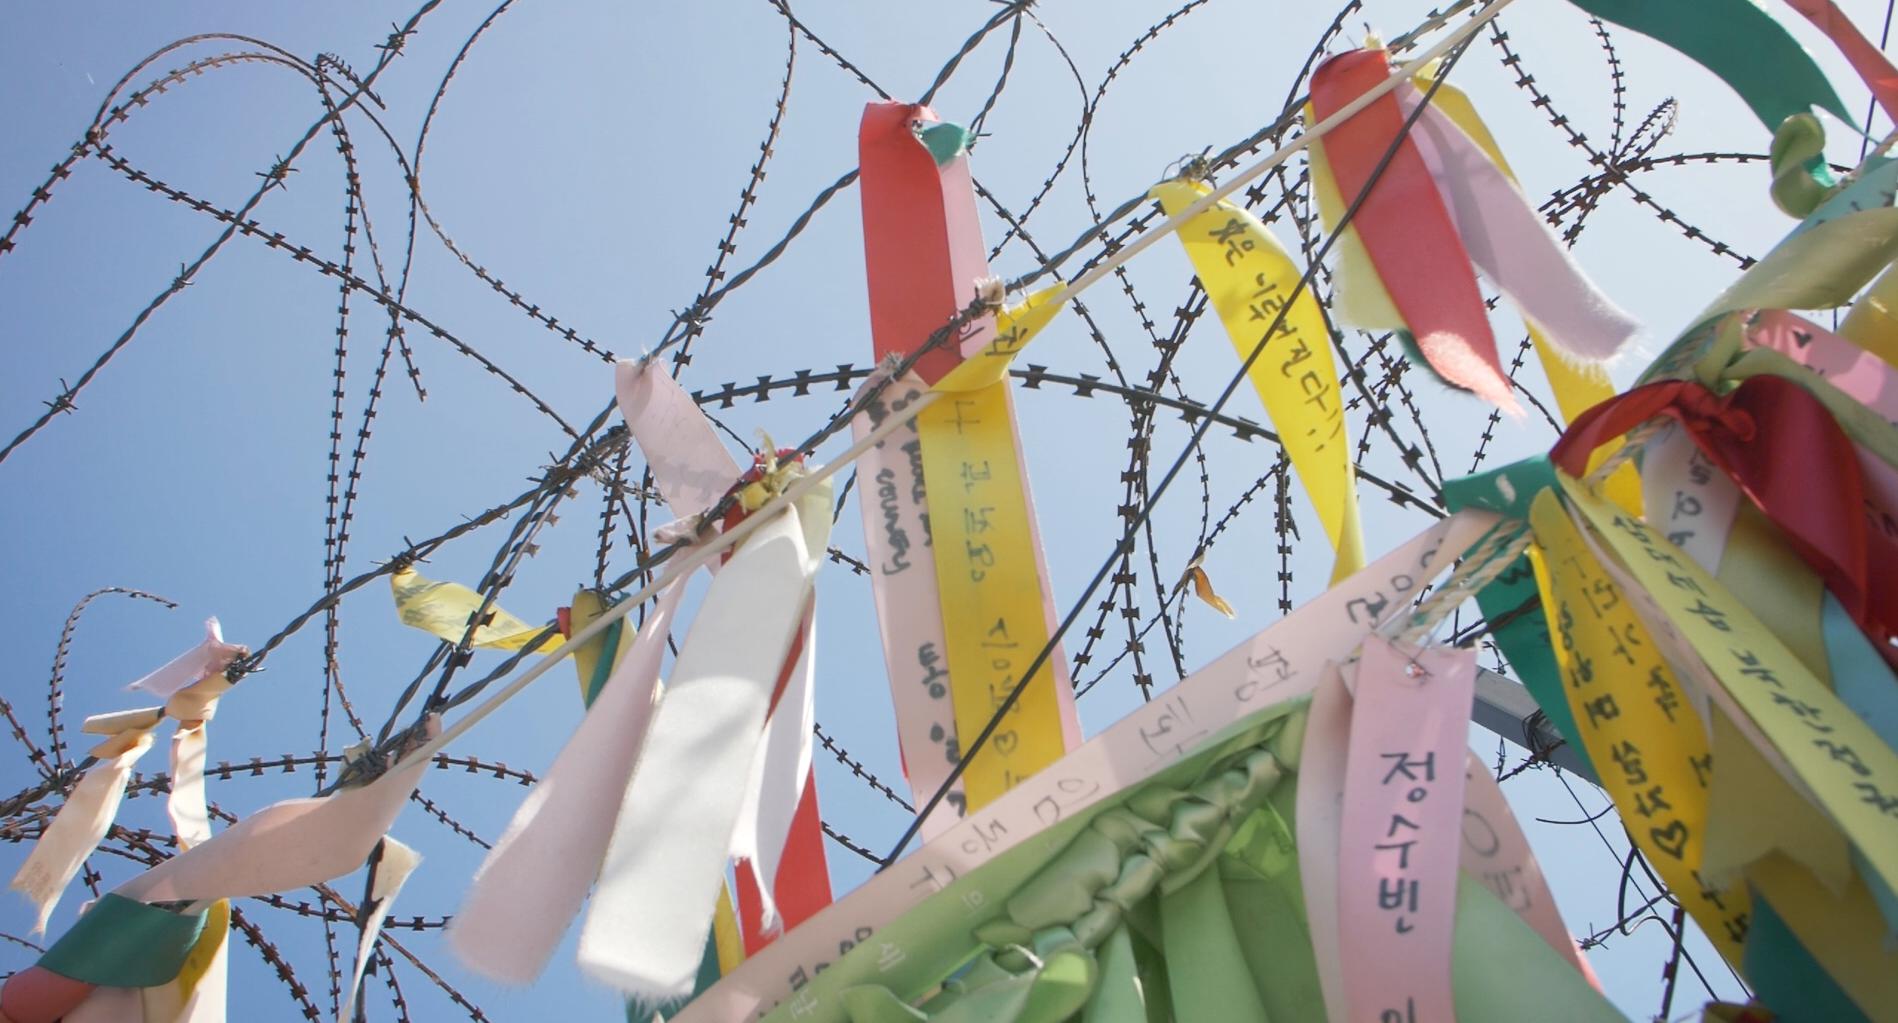 Free Stock Video Footage Download 4k Hd Clips Electric Barbed Wire Photo Public Domain Pictures Filming The Dmz Worlds Most Hostile Border